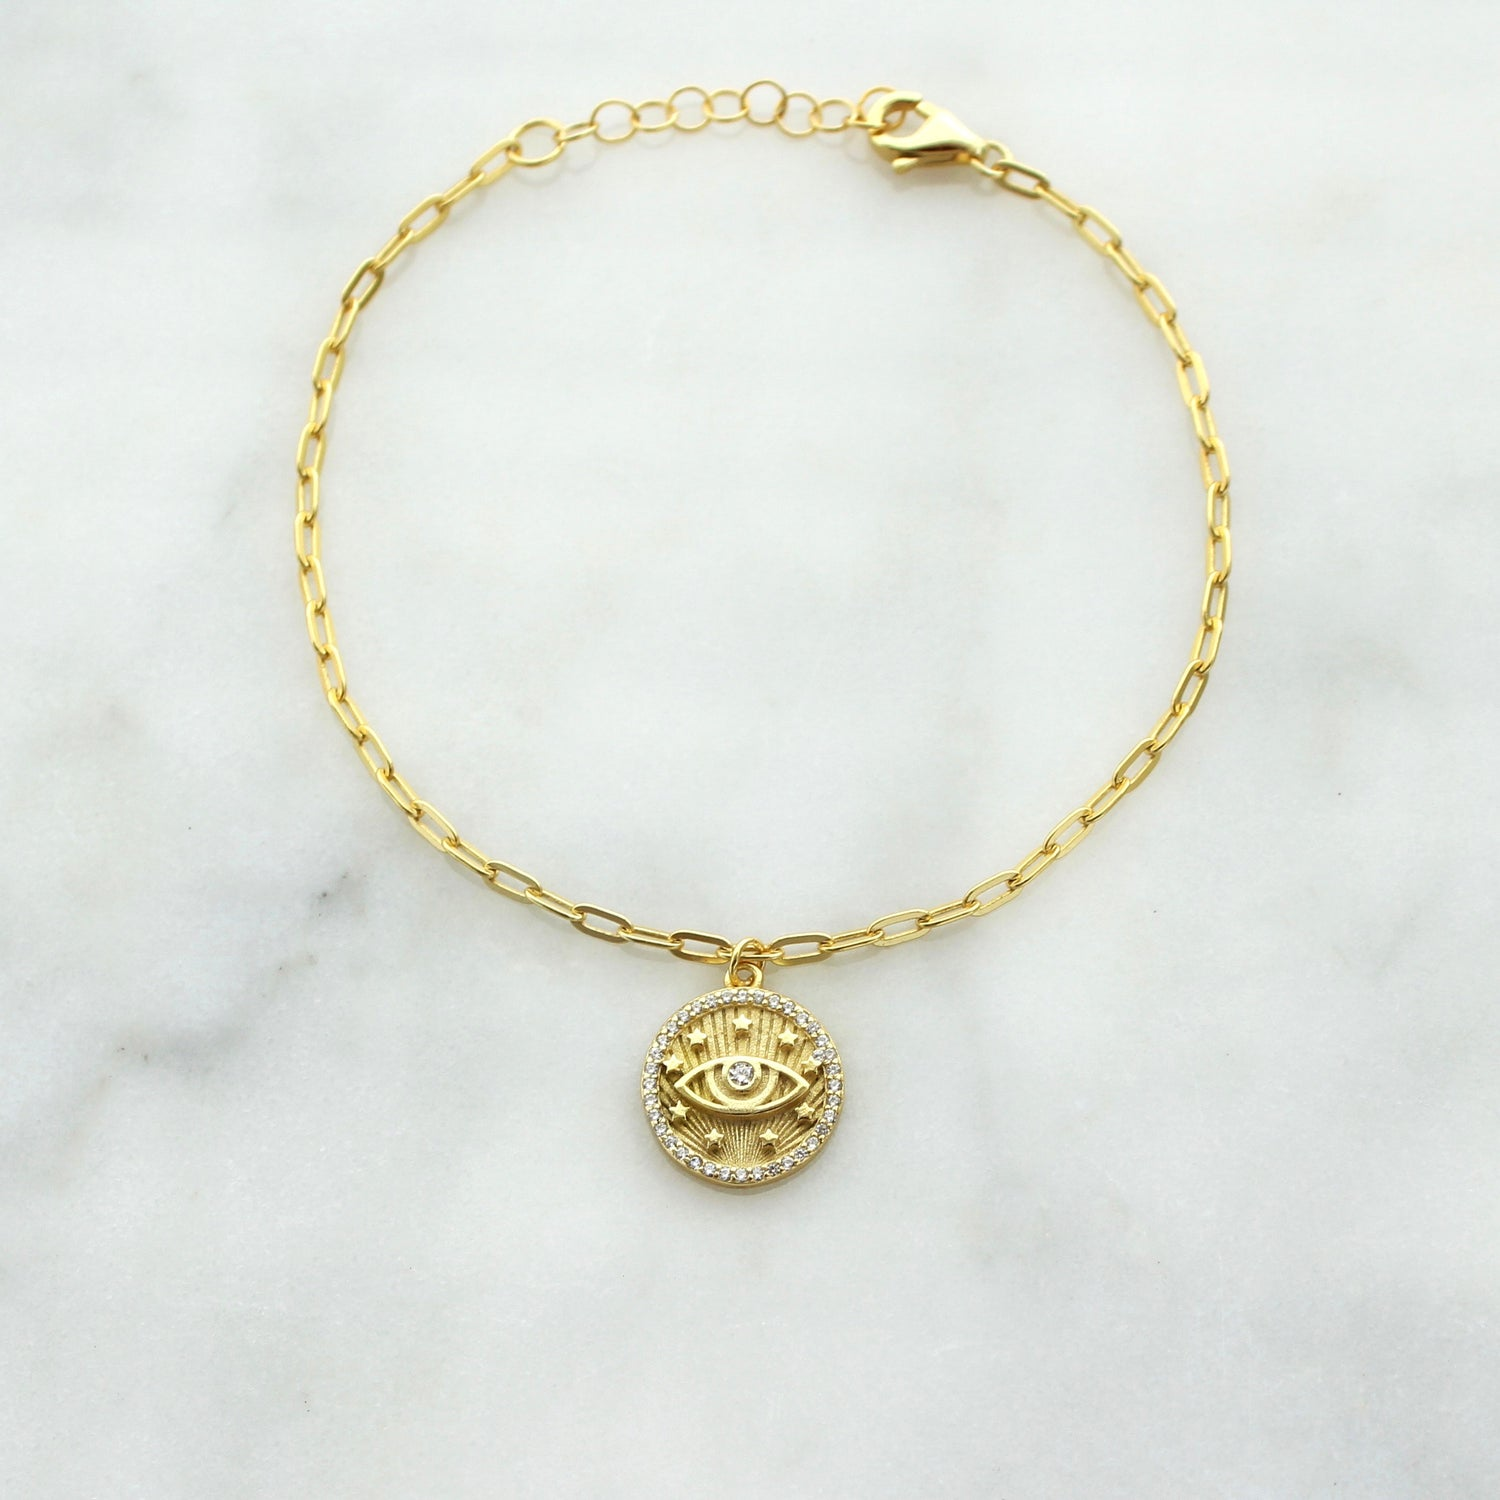 Evil Eye Medallion Charm Bracelet